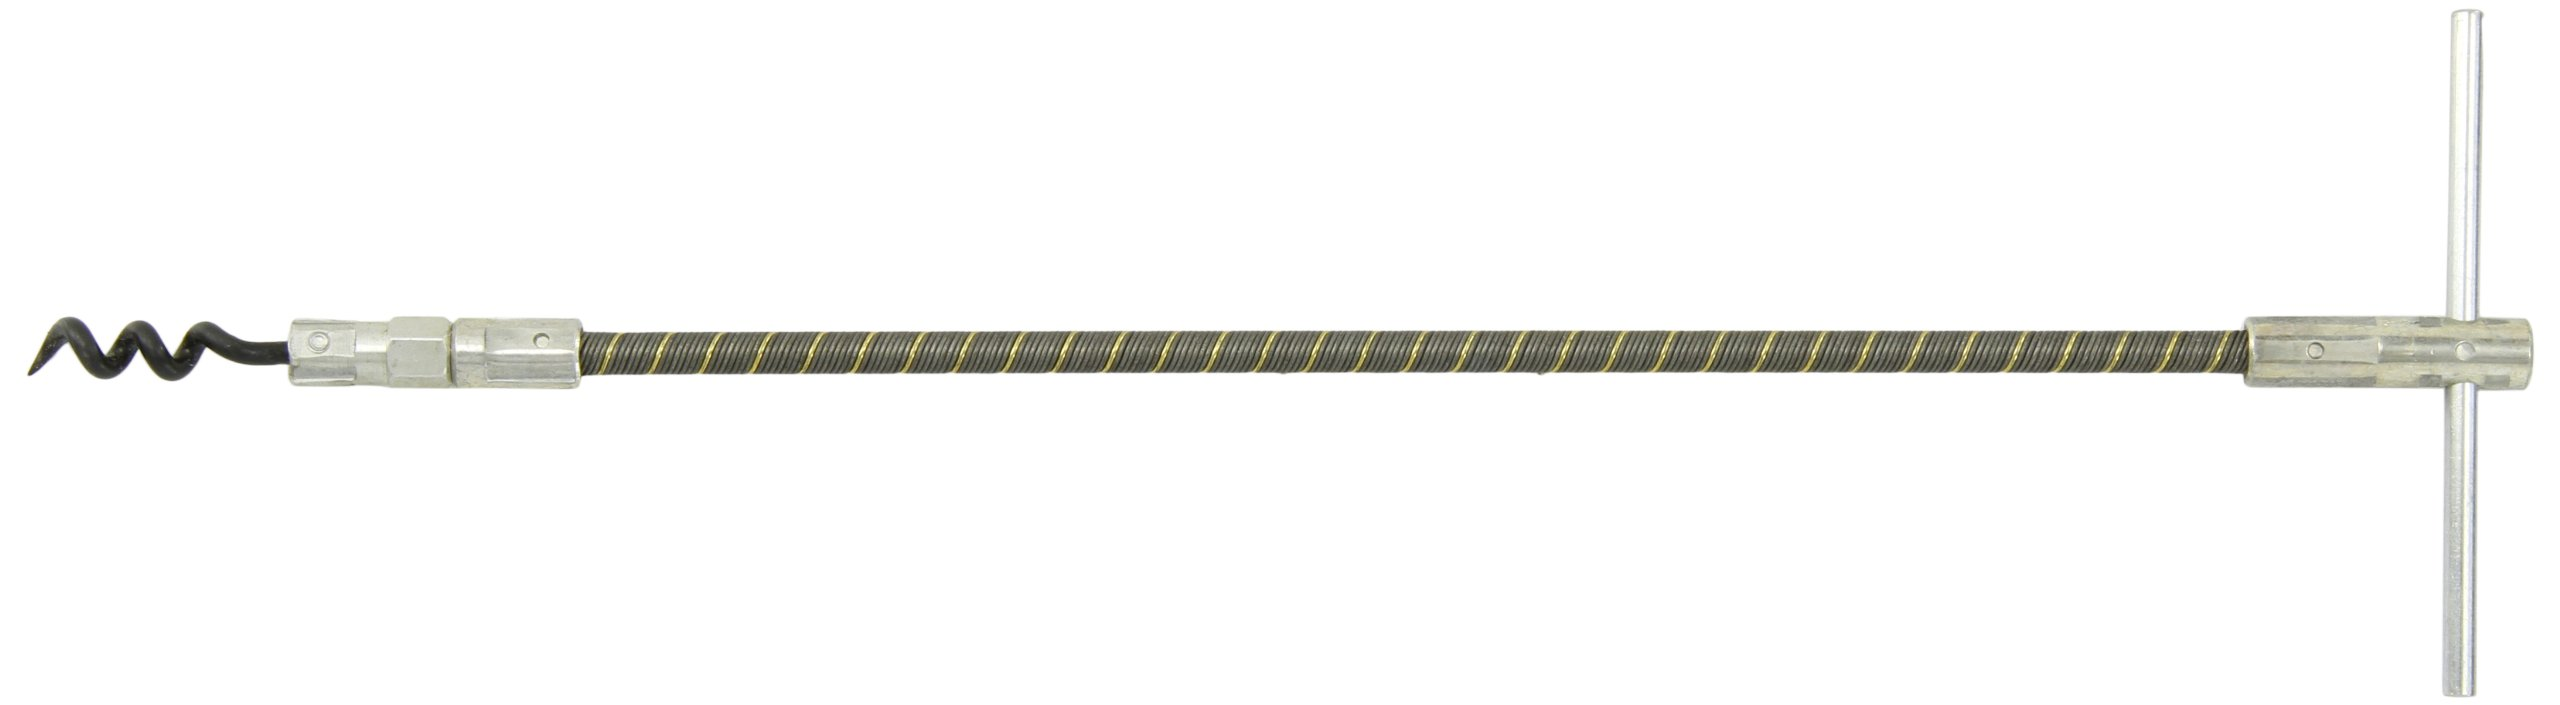 Palmetto 1103 Packing Extractor, Flexible Shaft, Removeable tip, Size F-3, 14-1/2 inch Length, for Packing Sizes 1/2 & up